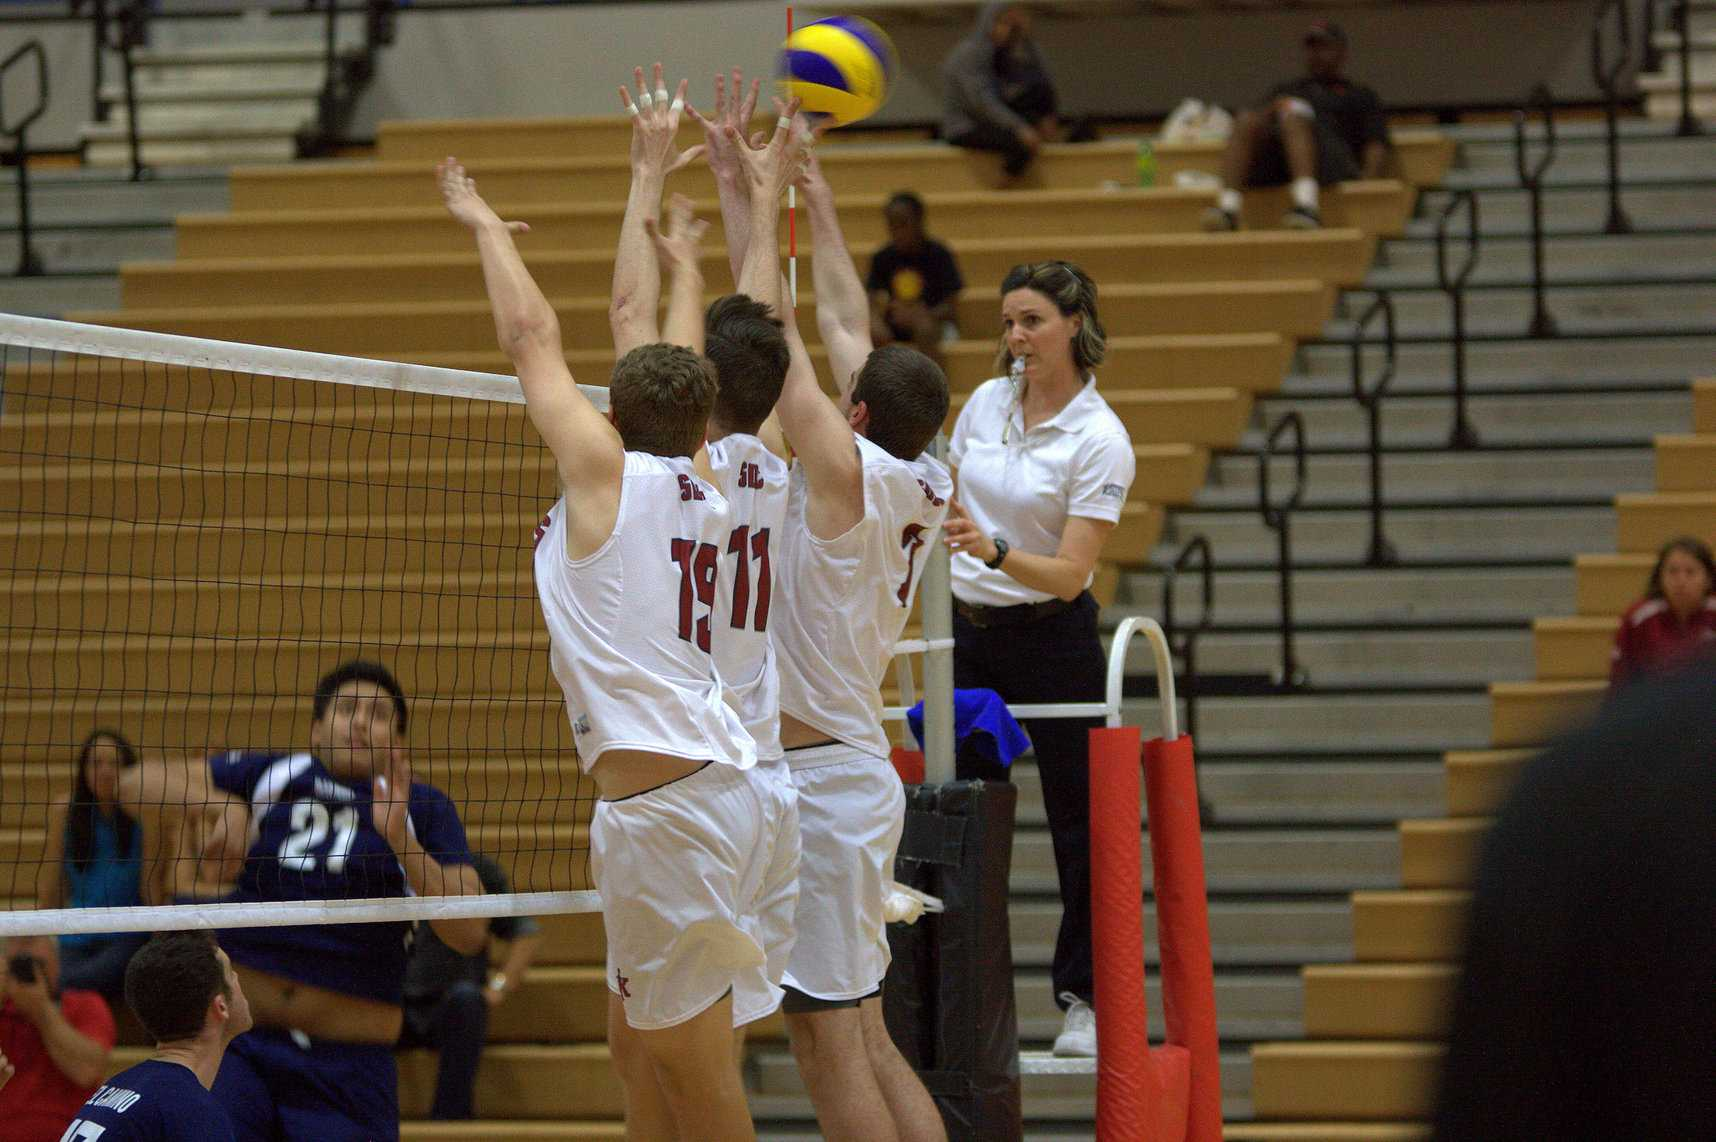 Freshmen (left to right) Jordan Walley, Shane McAdams and Lucas Timm attempt to block the ball but squeezes through their fingertips during the home opener on Feb. 13 against El Camino College at the Harry West Gym. Photo credit: David Pradel